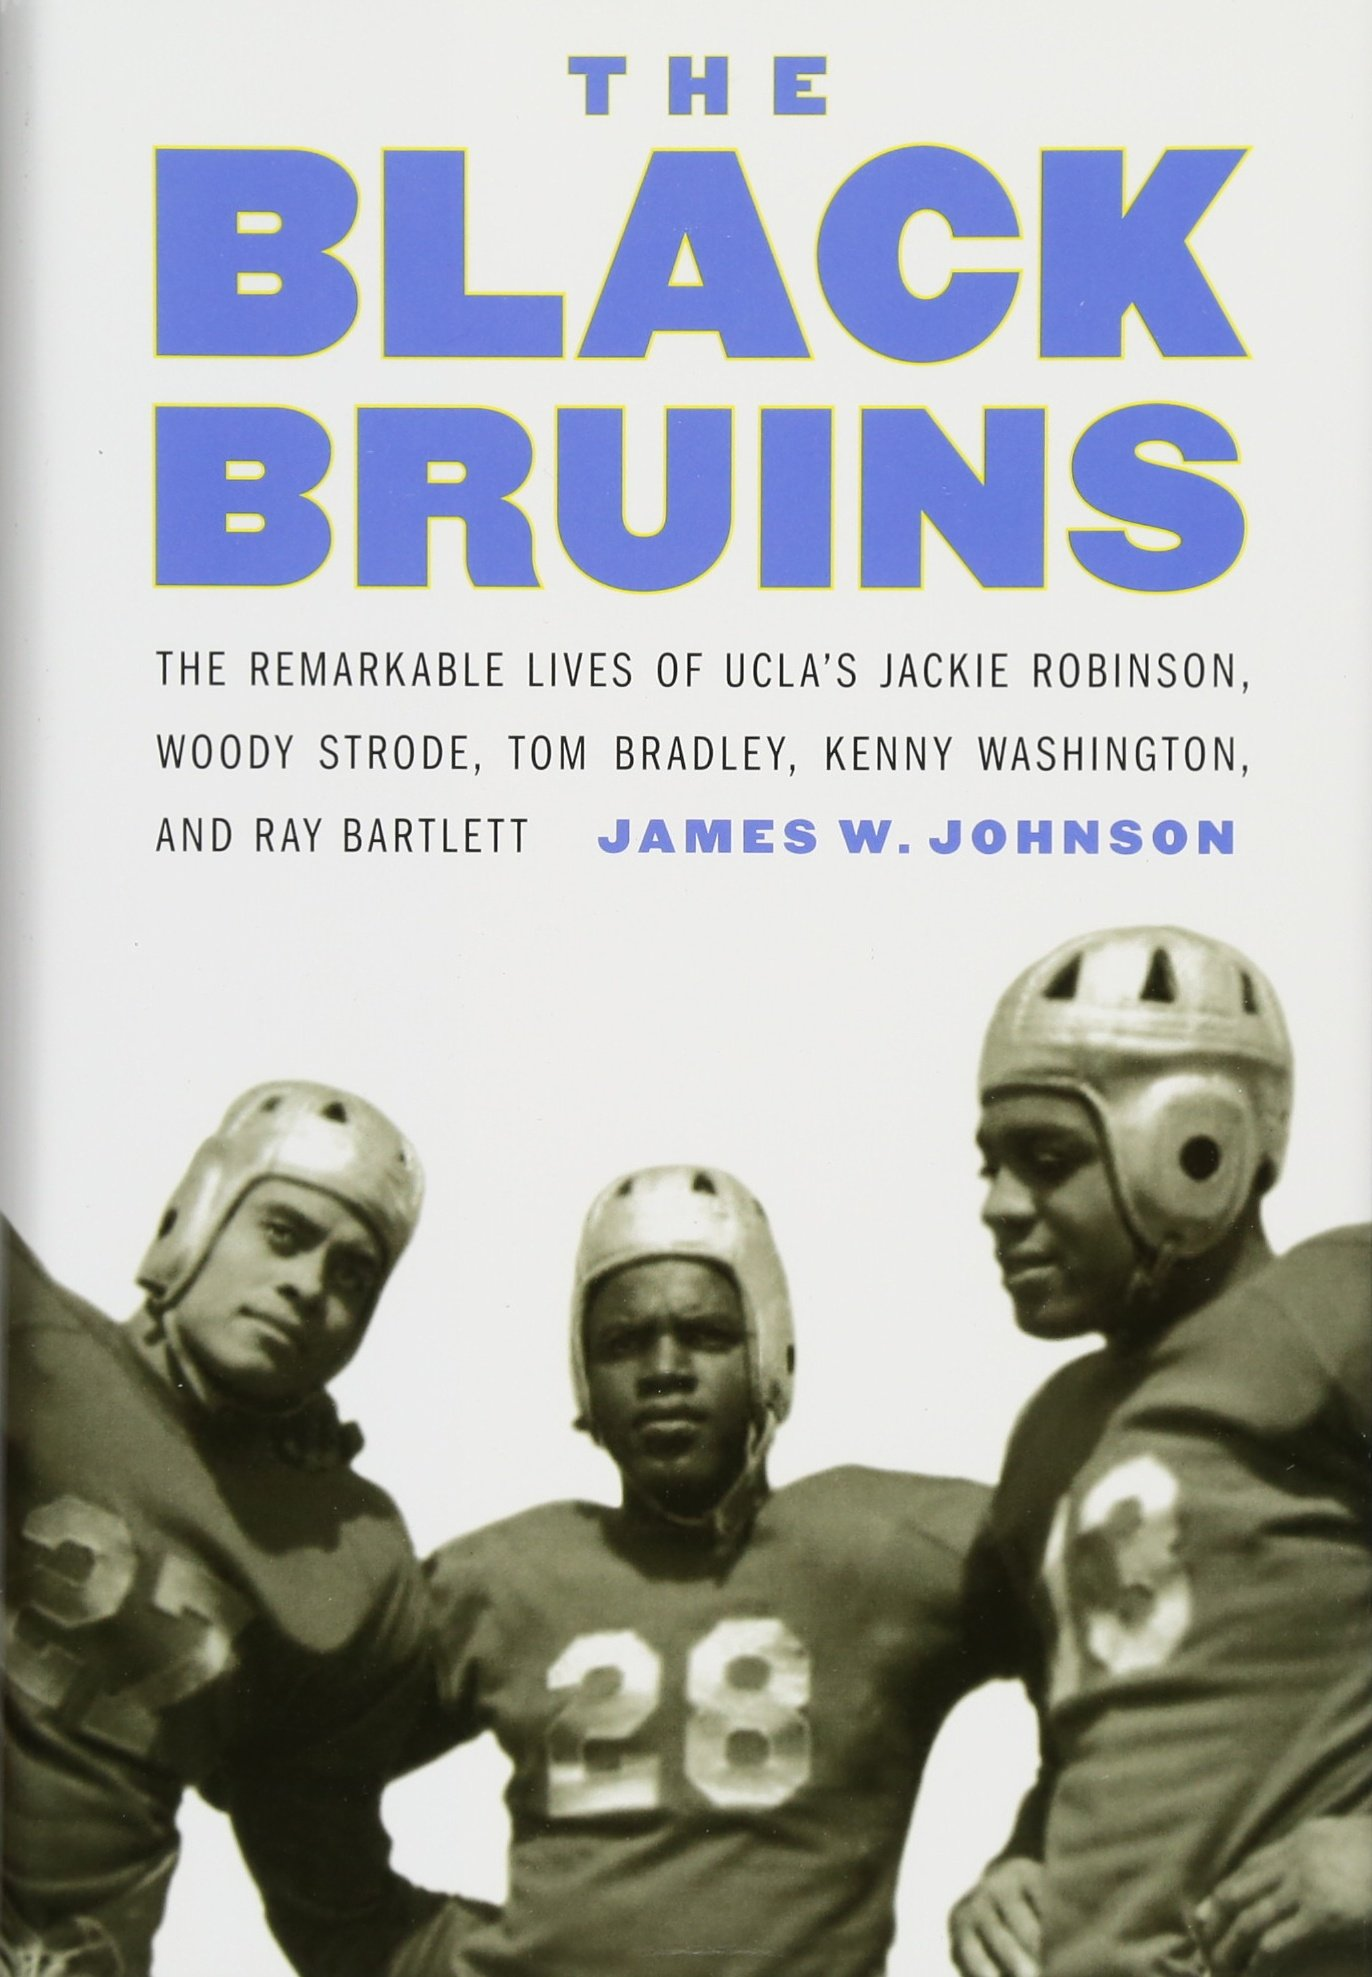 The Black Bruins: The Remarkable Lives of UCLA's Jackie Robinson, Woody Strode, Tom Bradley, Kenny Washington, and Ray Bartlett ebook